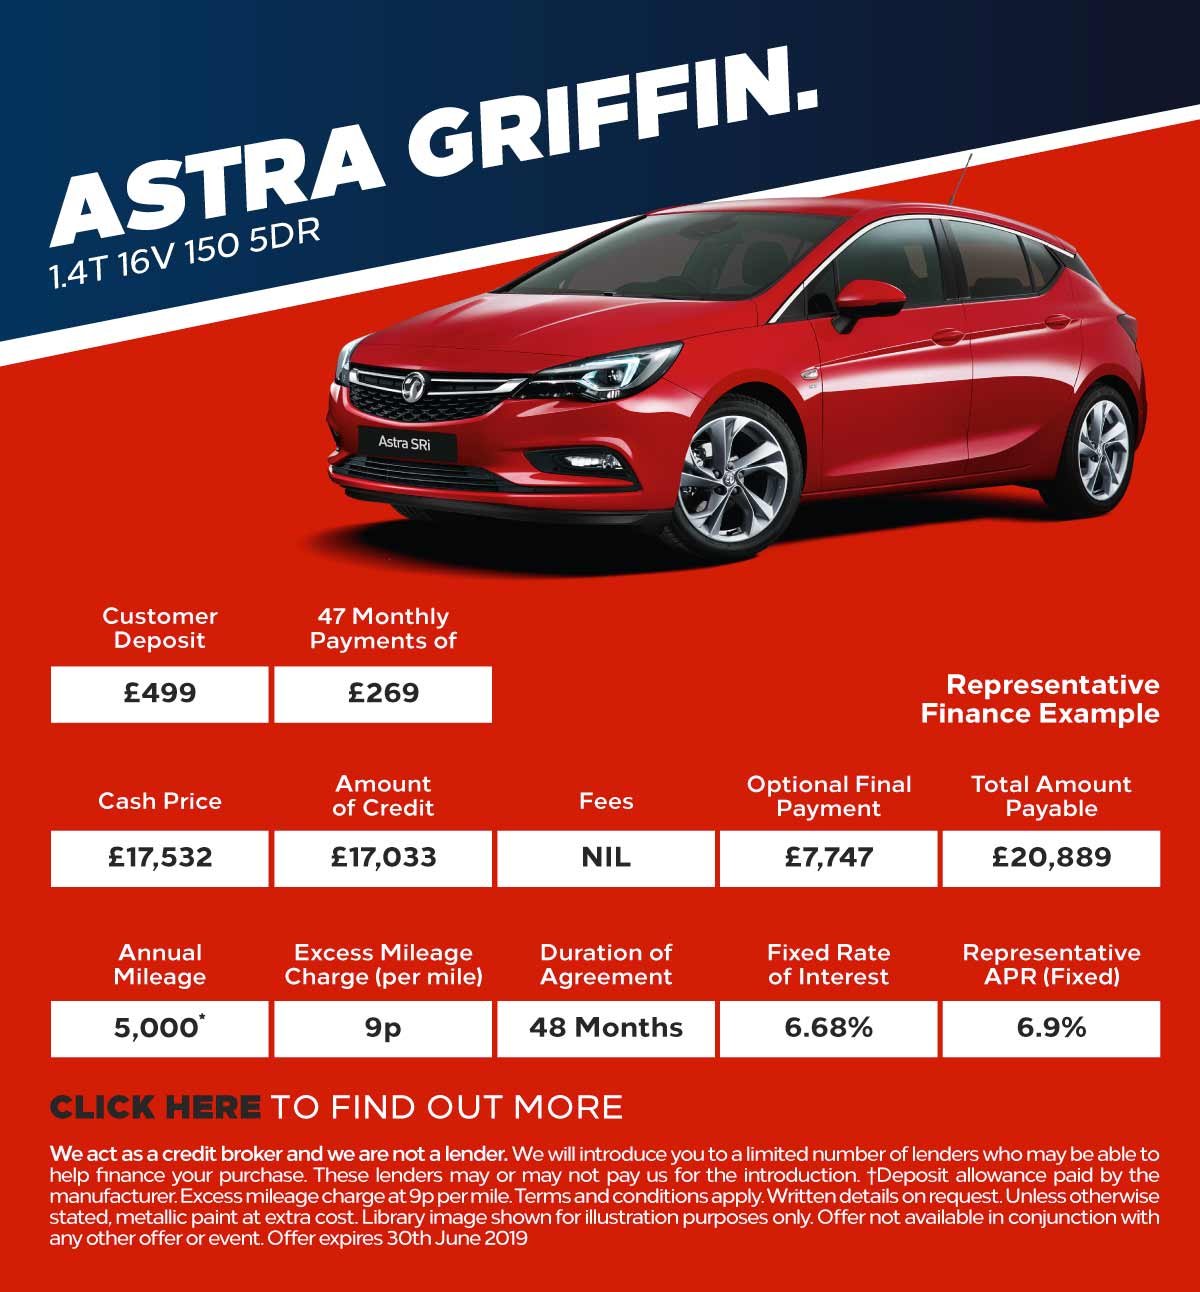 [Vauxhall Astra] Vauxhall Astra Griffin 110419 Banner 1